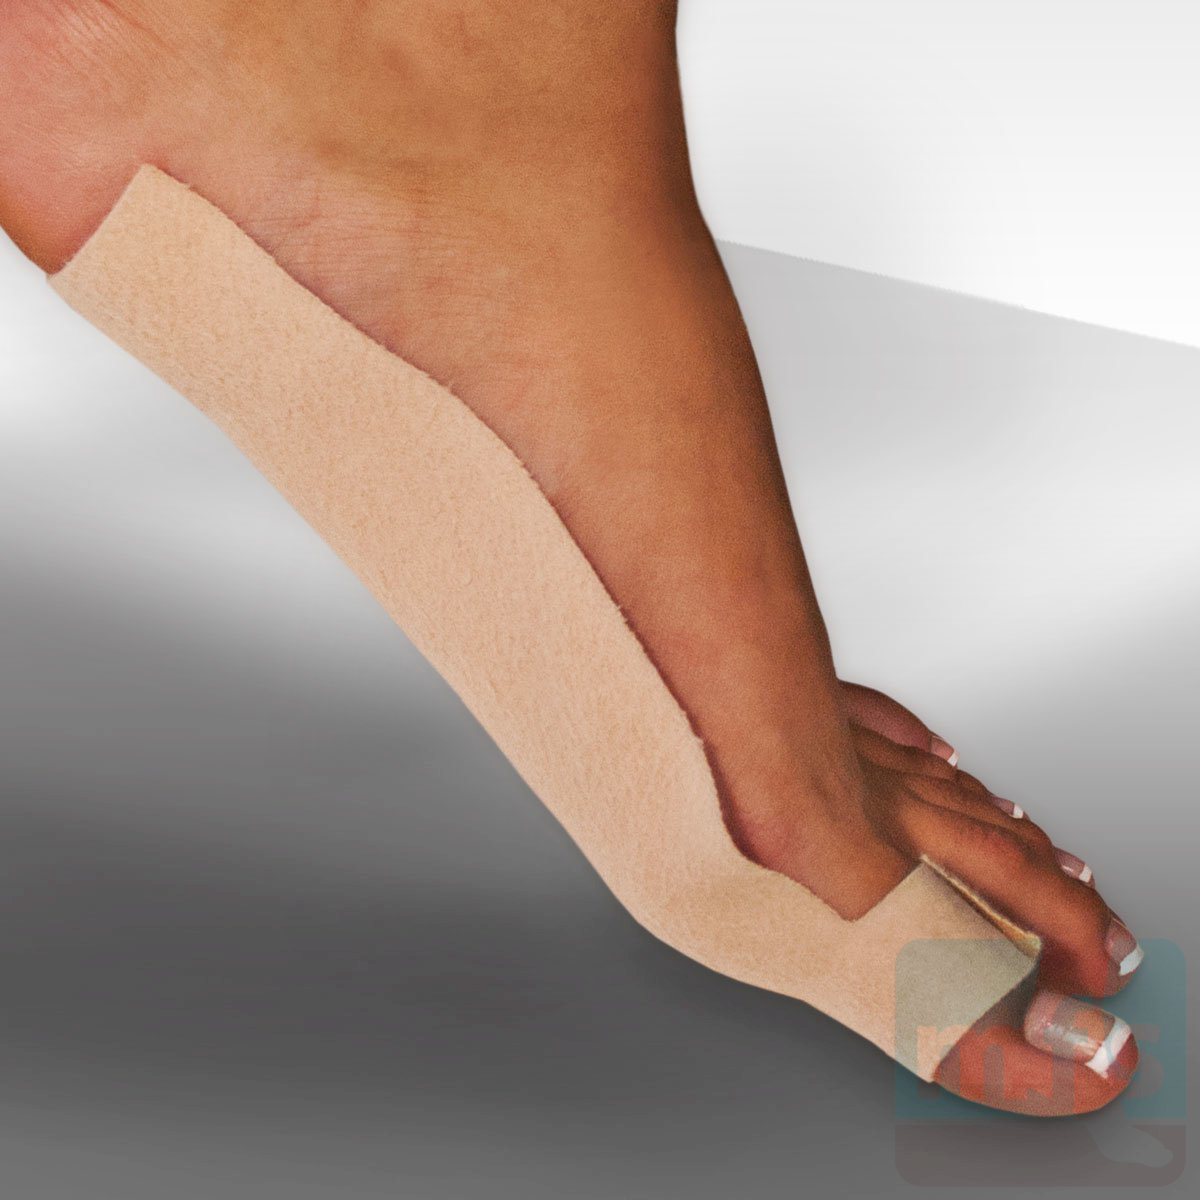 Best Shoes For Hallux Gigidus